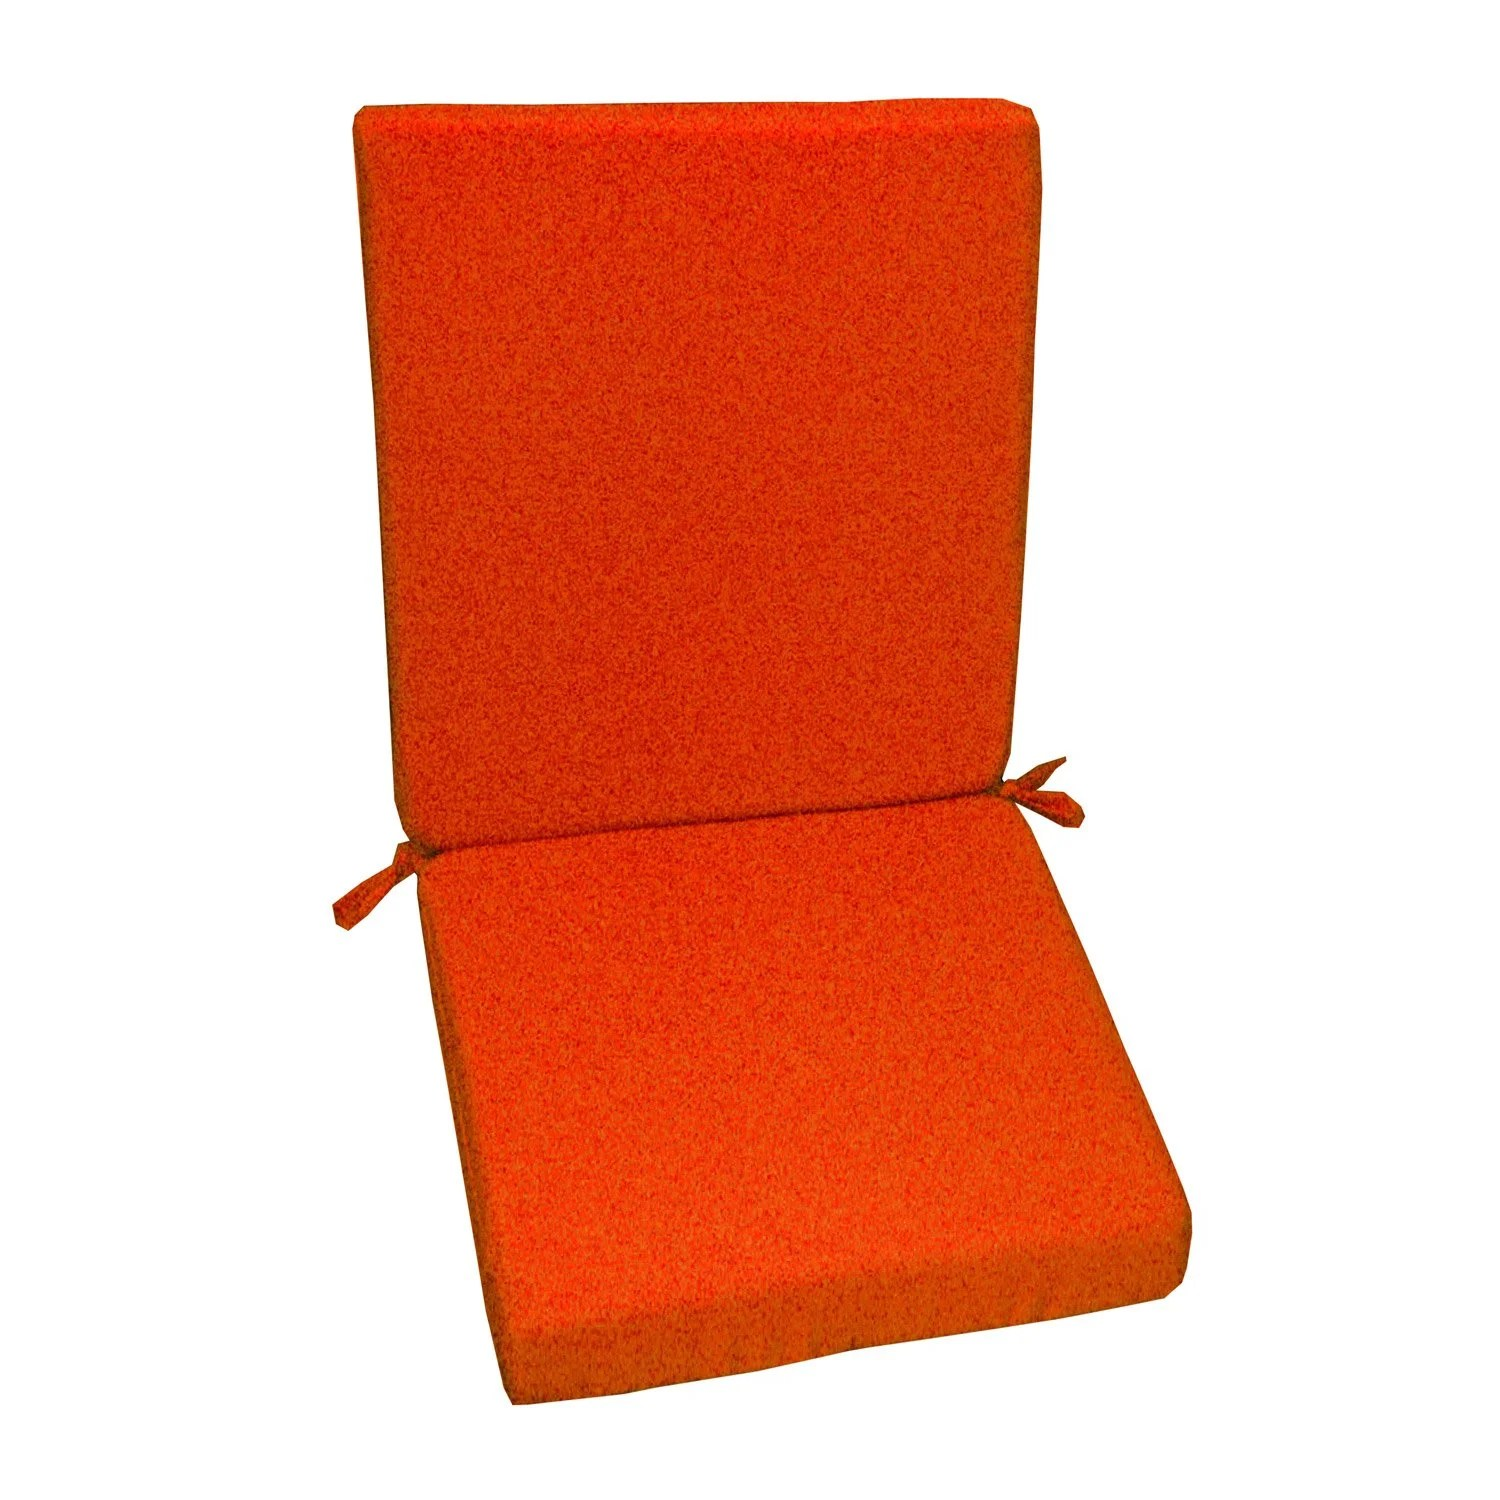 Salon De Jardin Orange Coussin D 39assise De Chaise Ou De Fauteuil Orange Lola